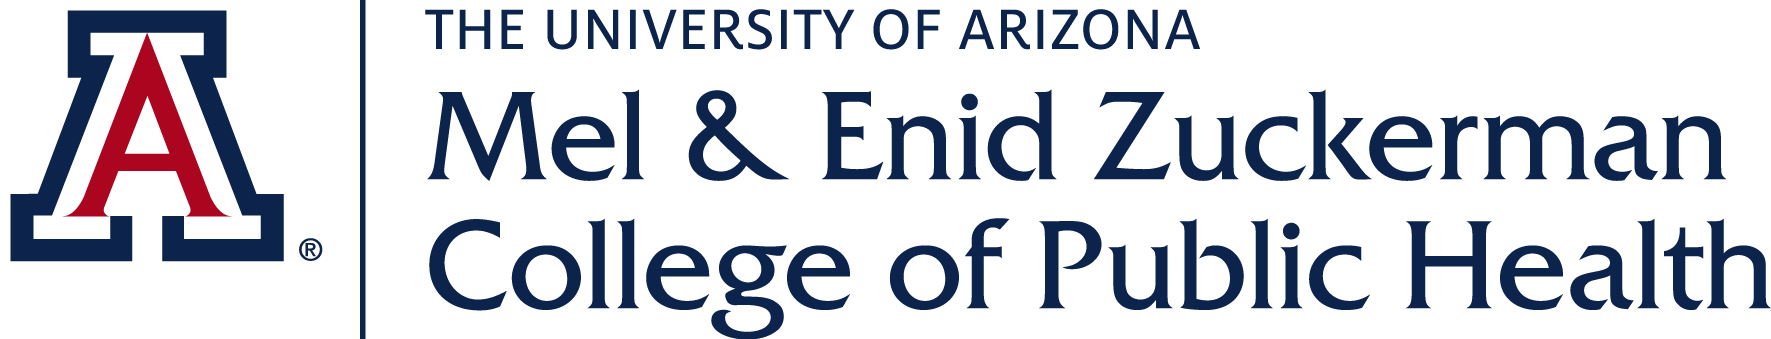 University of Arizona College of Public Health